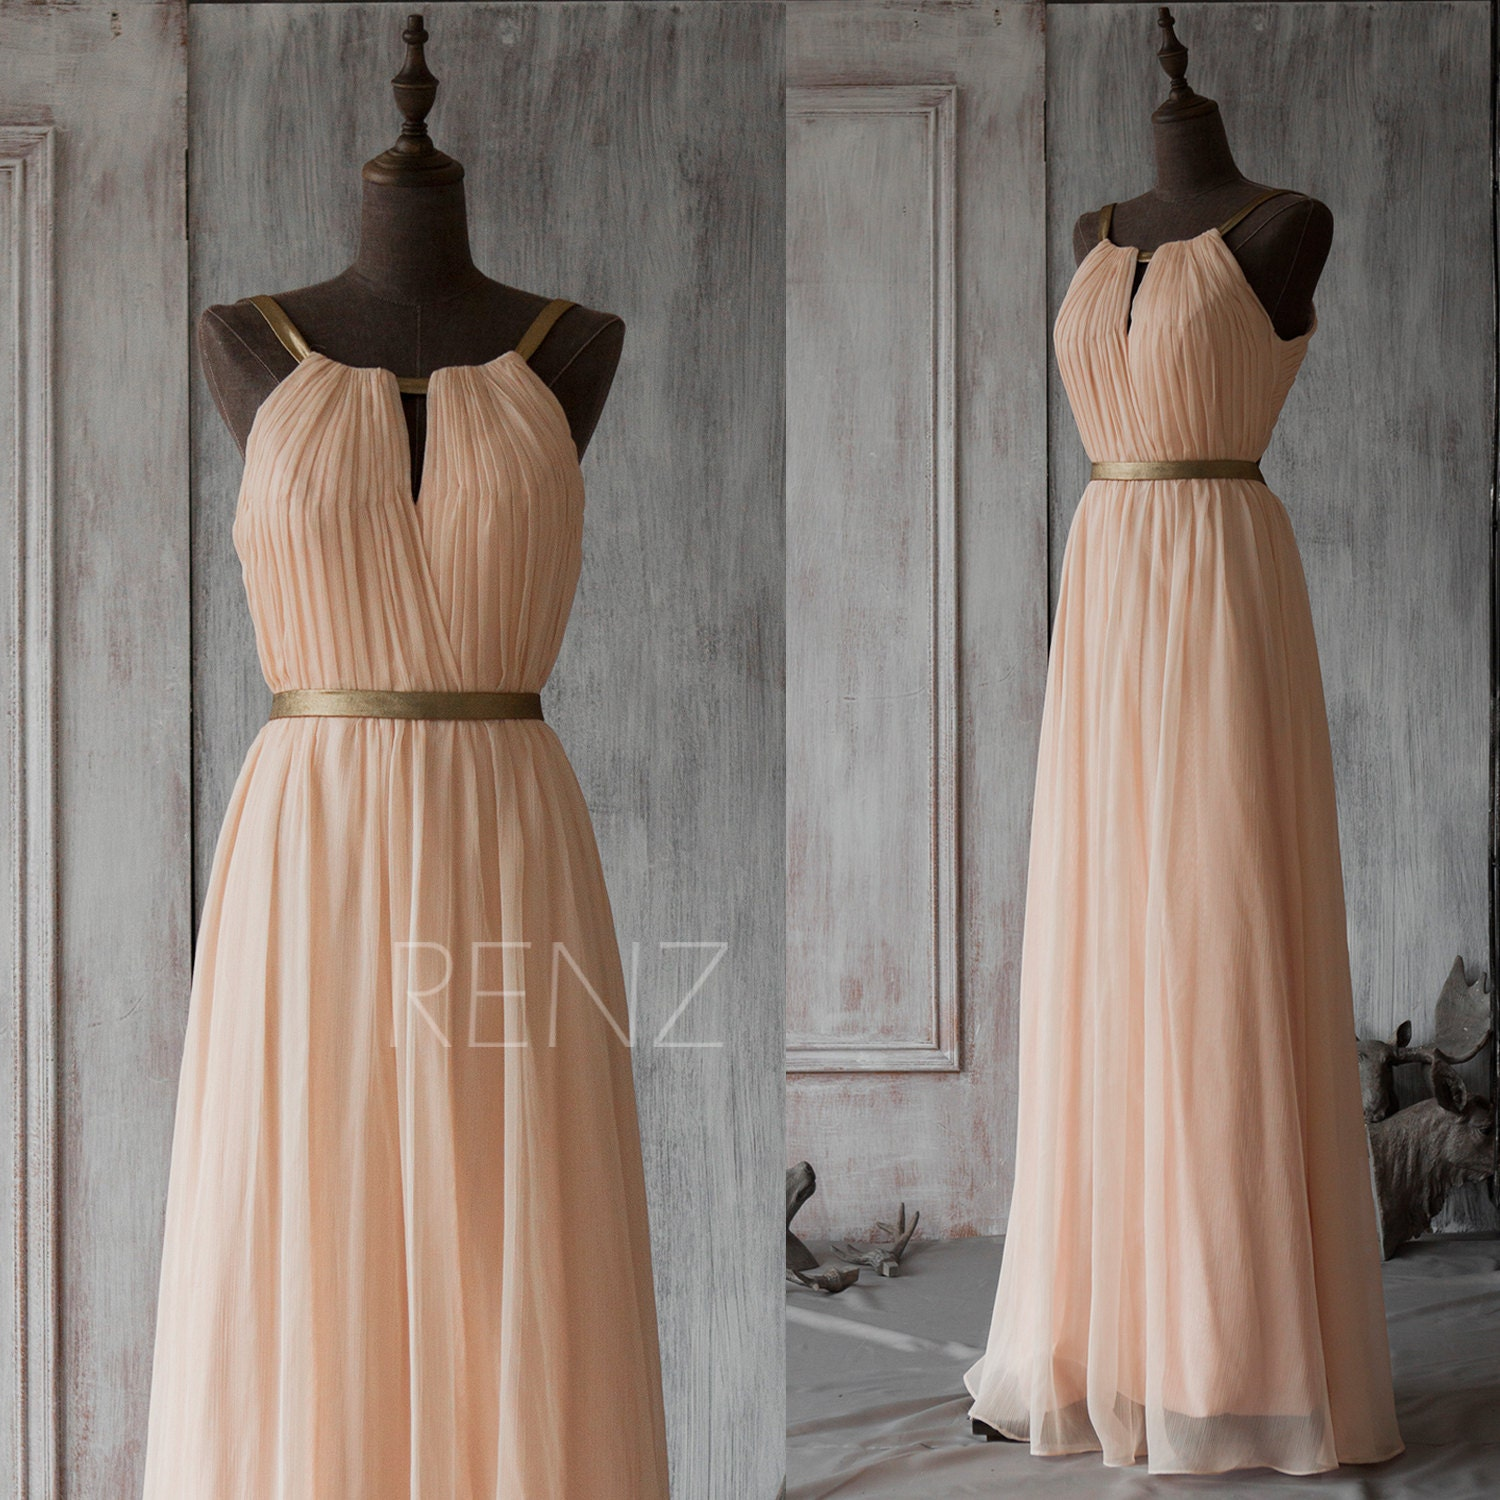 Long bridesmaid dress peach prom dress chiffon wedding zoom ombrellifo Image collections